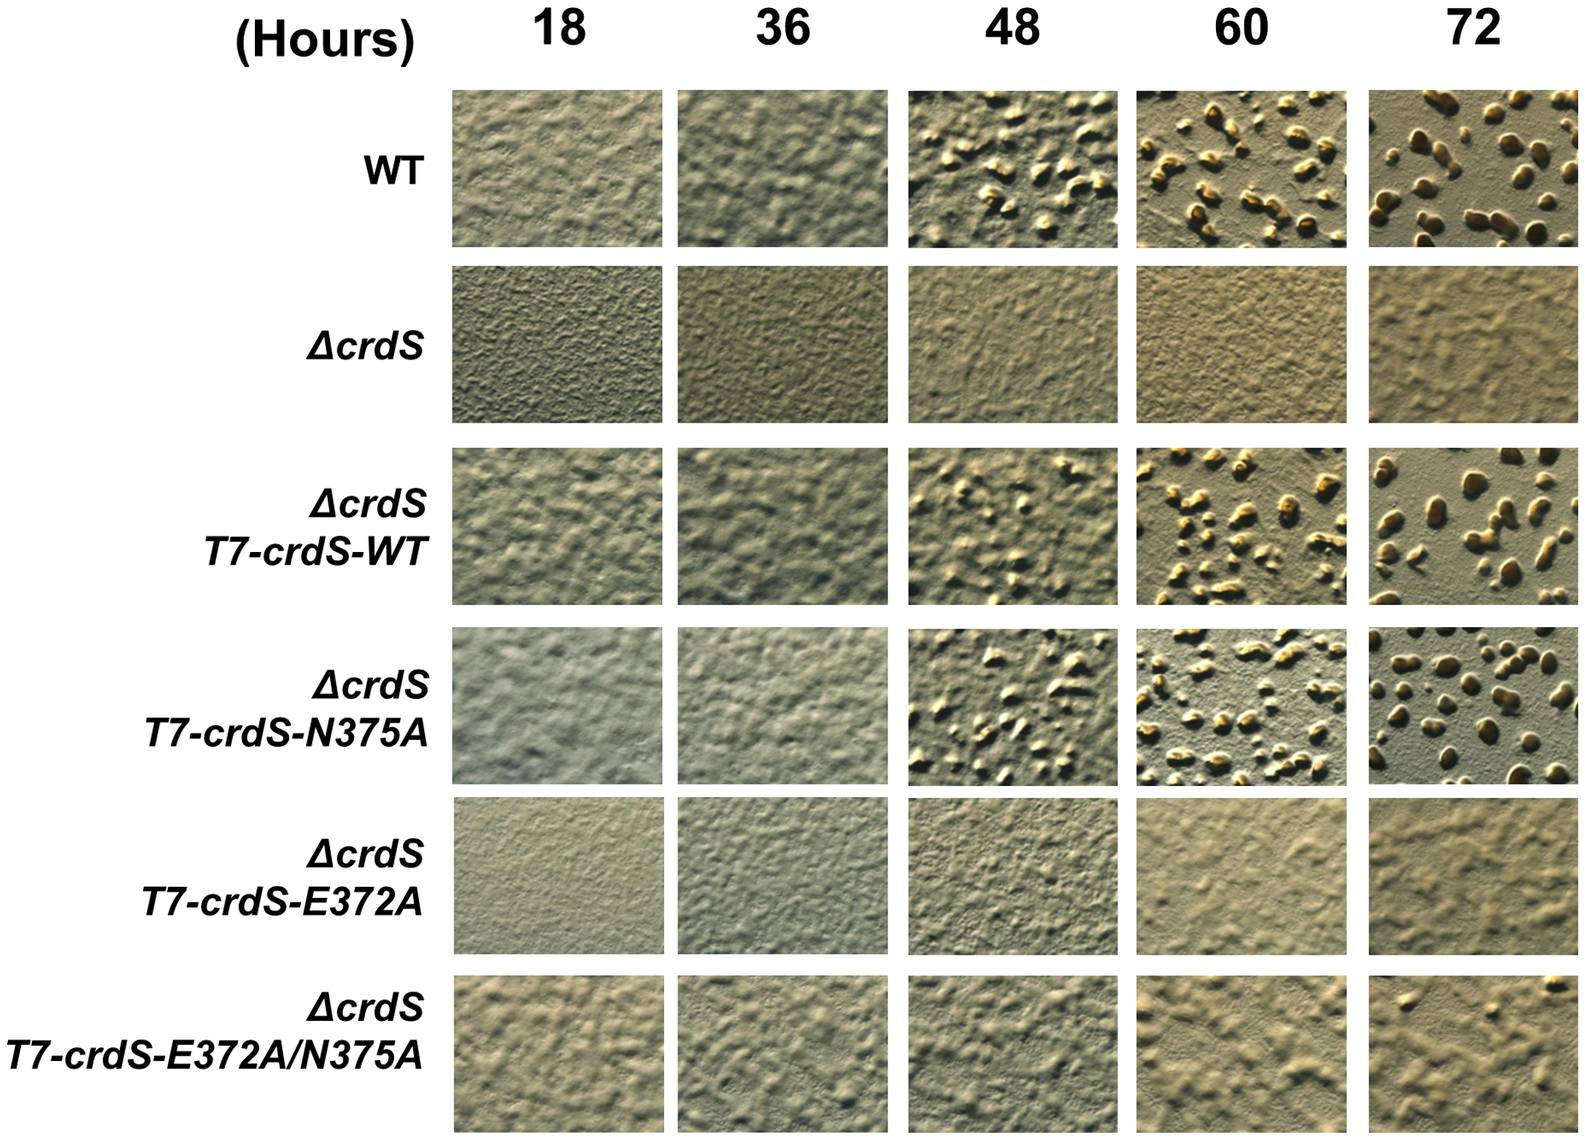 <i>M. xanthus</i> Development Is Affected by Expression of CrdS Kinase and Phosphatase Mutant Proteins.